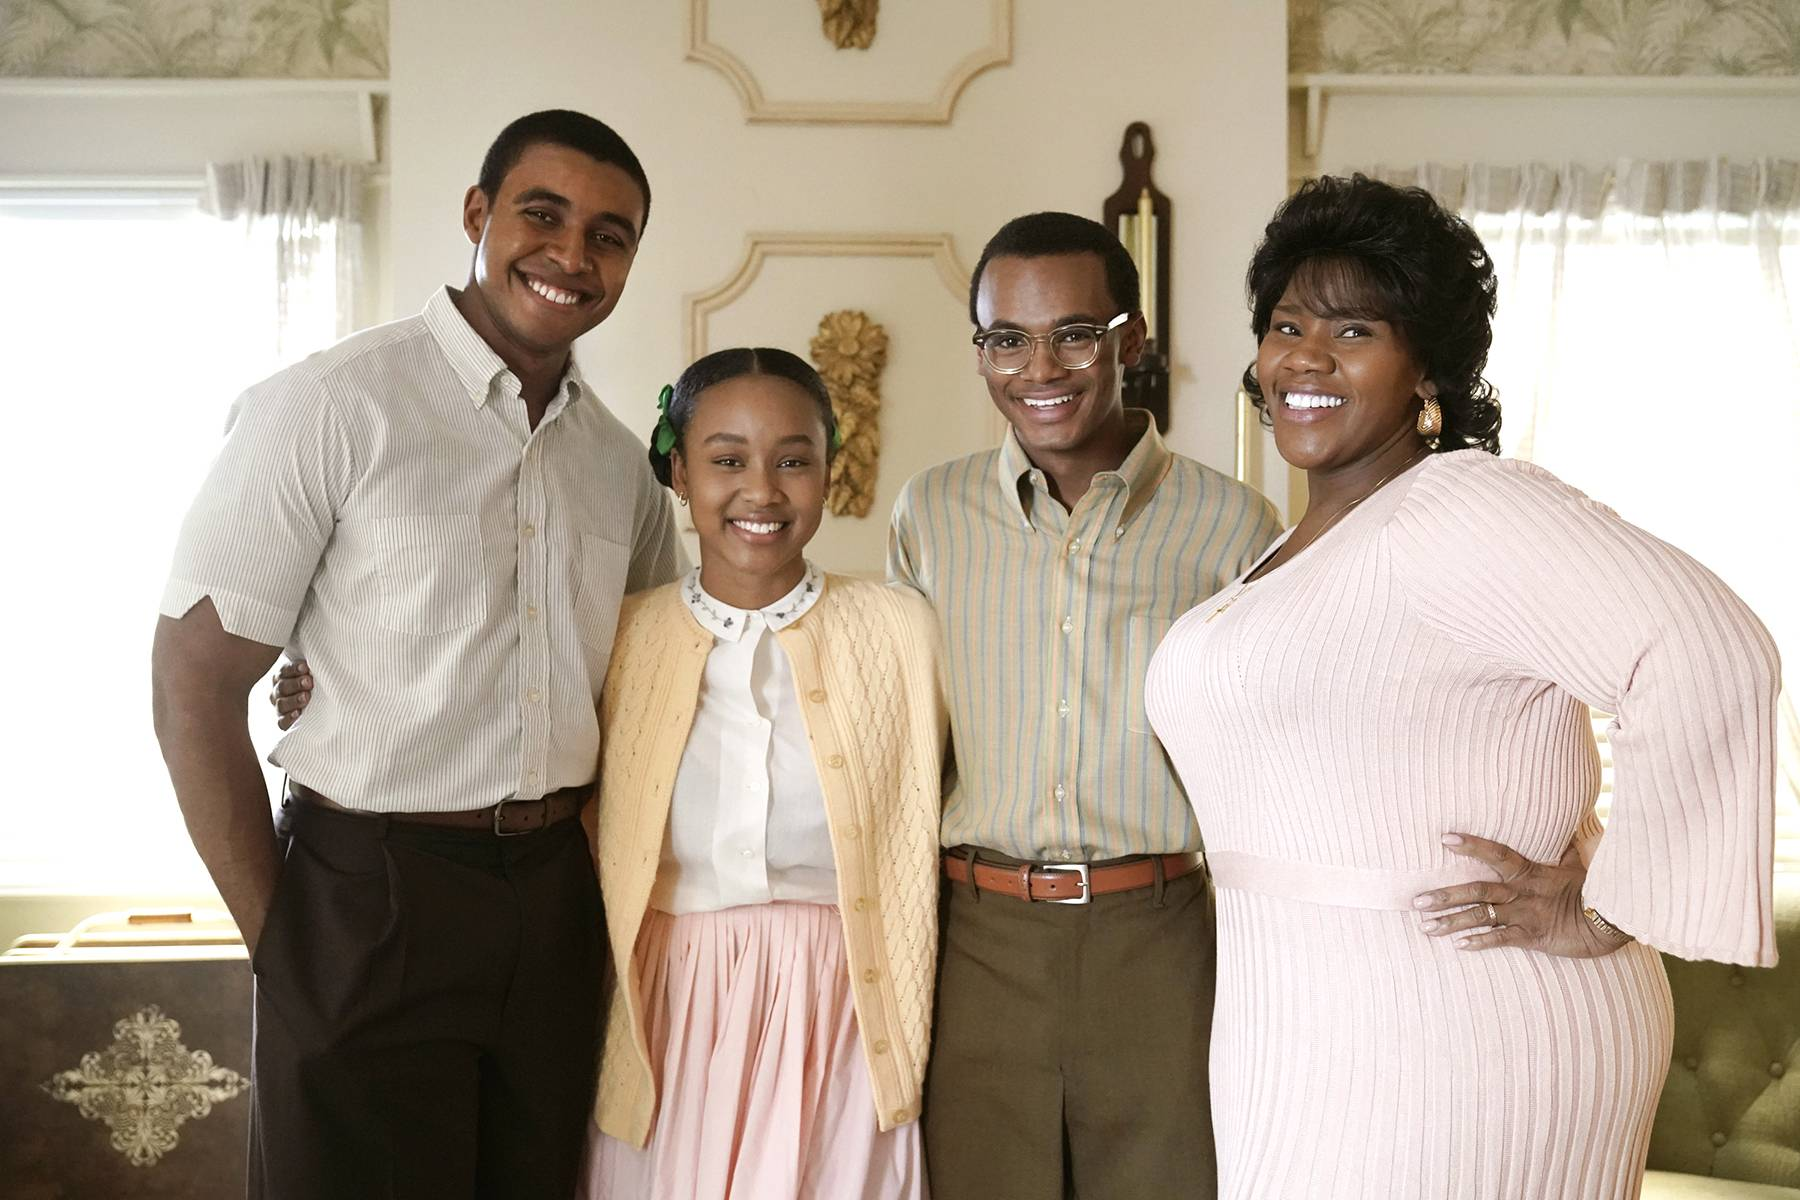 Behind The Scenes With Cast - Katlyn Nichol as Simone Clarke, Jelani Winston as Kendall Clarke, and Kelly Price as Brianne Clarke.